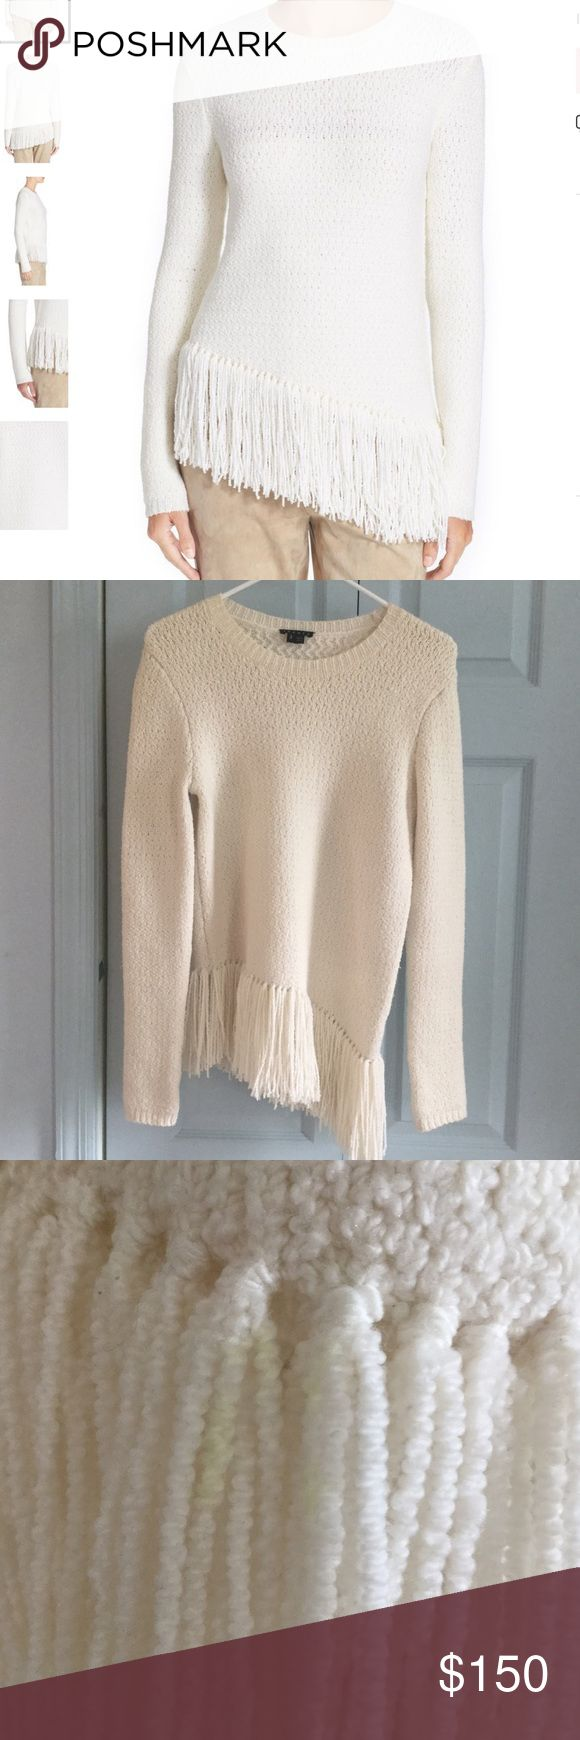 """NWOT Theory """"Hudina R"""" Fringe Merino Sweater Super cute sweater with an asymmetrical bottom. I just got the highlighter on it when I was marking things I've listed off and dropped the highlighter right on it- I'm sure this will come out after a wash, but I didn't want to take away from its new condition. This is SO soft and comfortable. It will be perfect for this time of year/spring. Cream/off-white color. Purchased from Nordstrom; no longer in stock. Theory Sweaters Crew & Scoop Necks"""